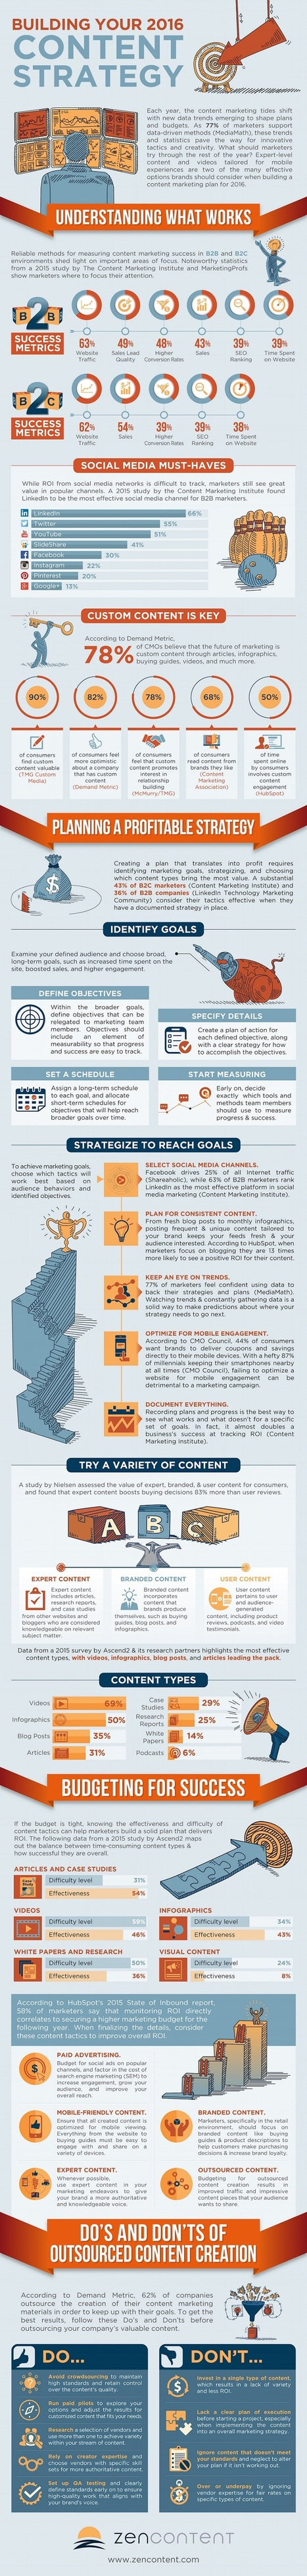 Building Your 2016 Content Strategy [Infographic] | Surviving Social Chaos | Scoop.it